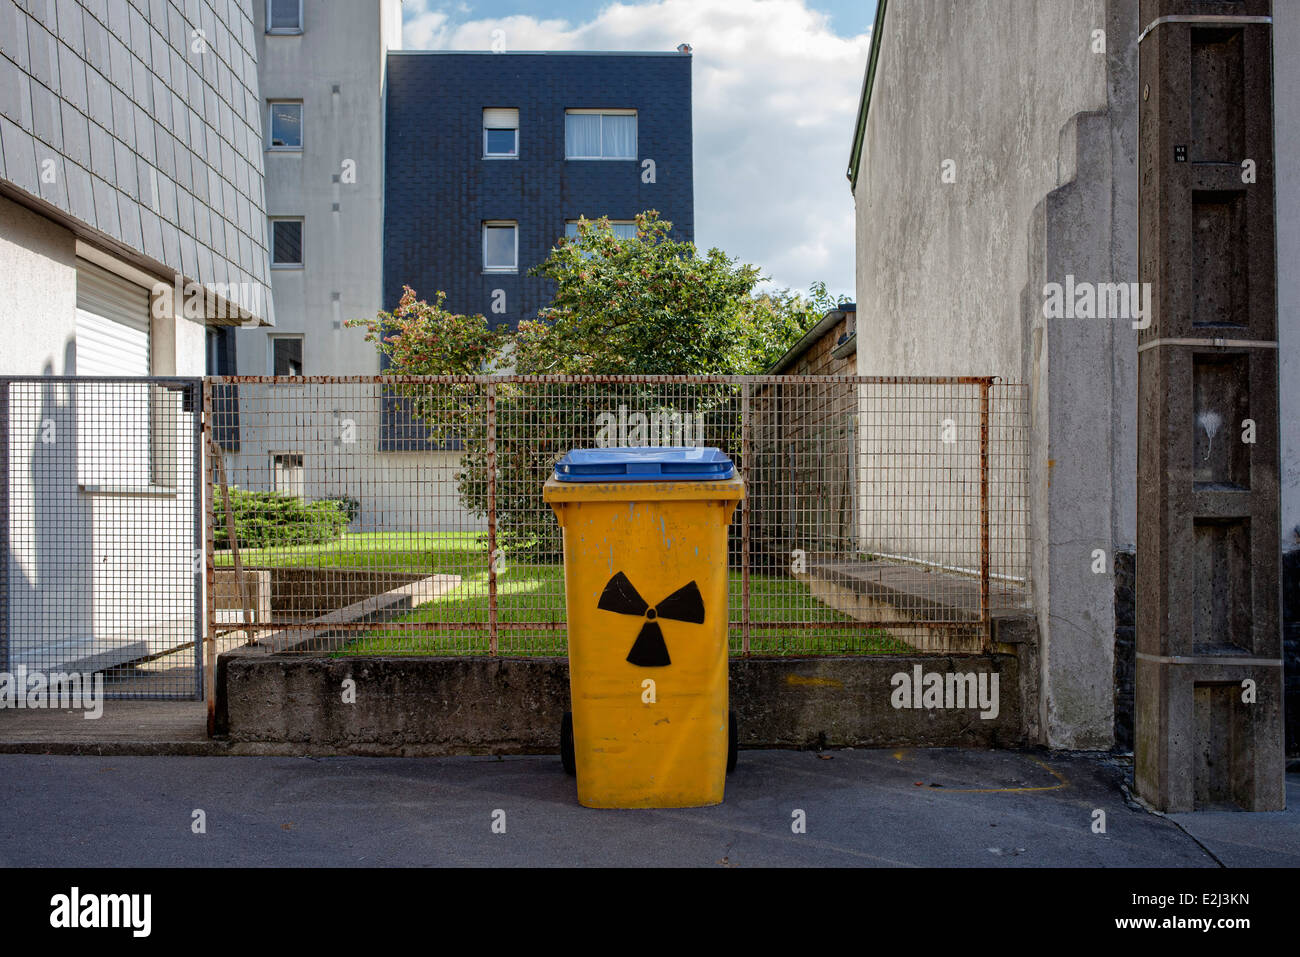 Waste receptacle with nuclear waste symbol painted on it - Stock Image